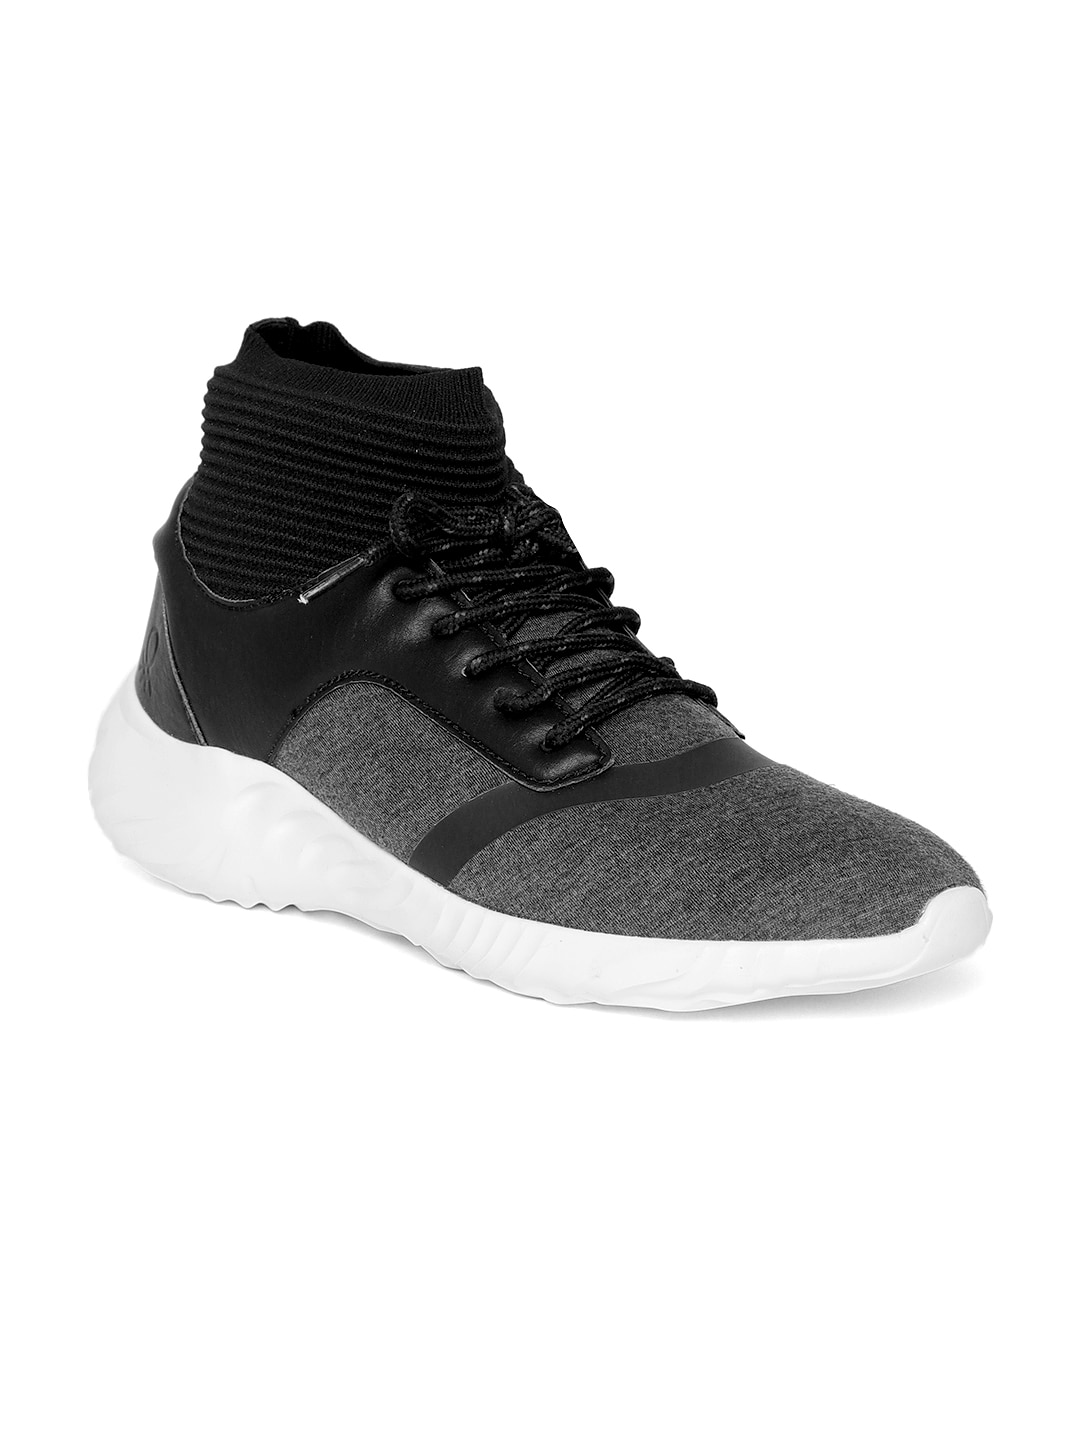 United Colors Of Benetton Shoes Buy Ucb Sneakers Online